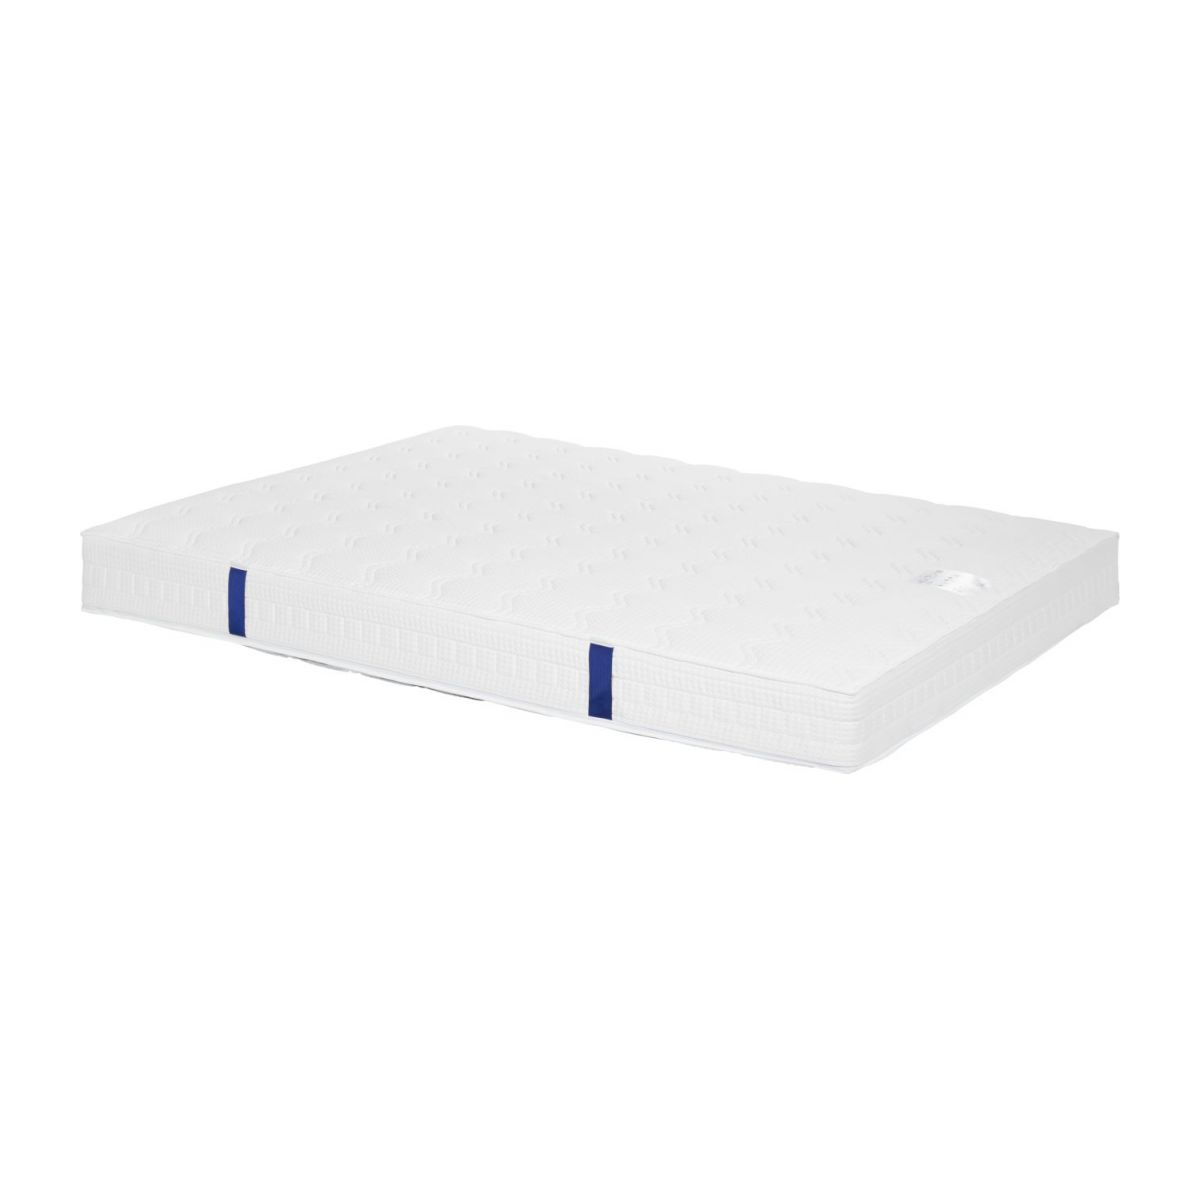 Spring mattress, width 20 cm, 140x200cm - firm support n°1